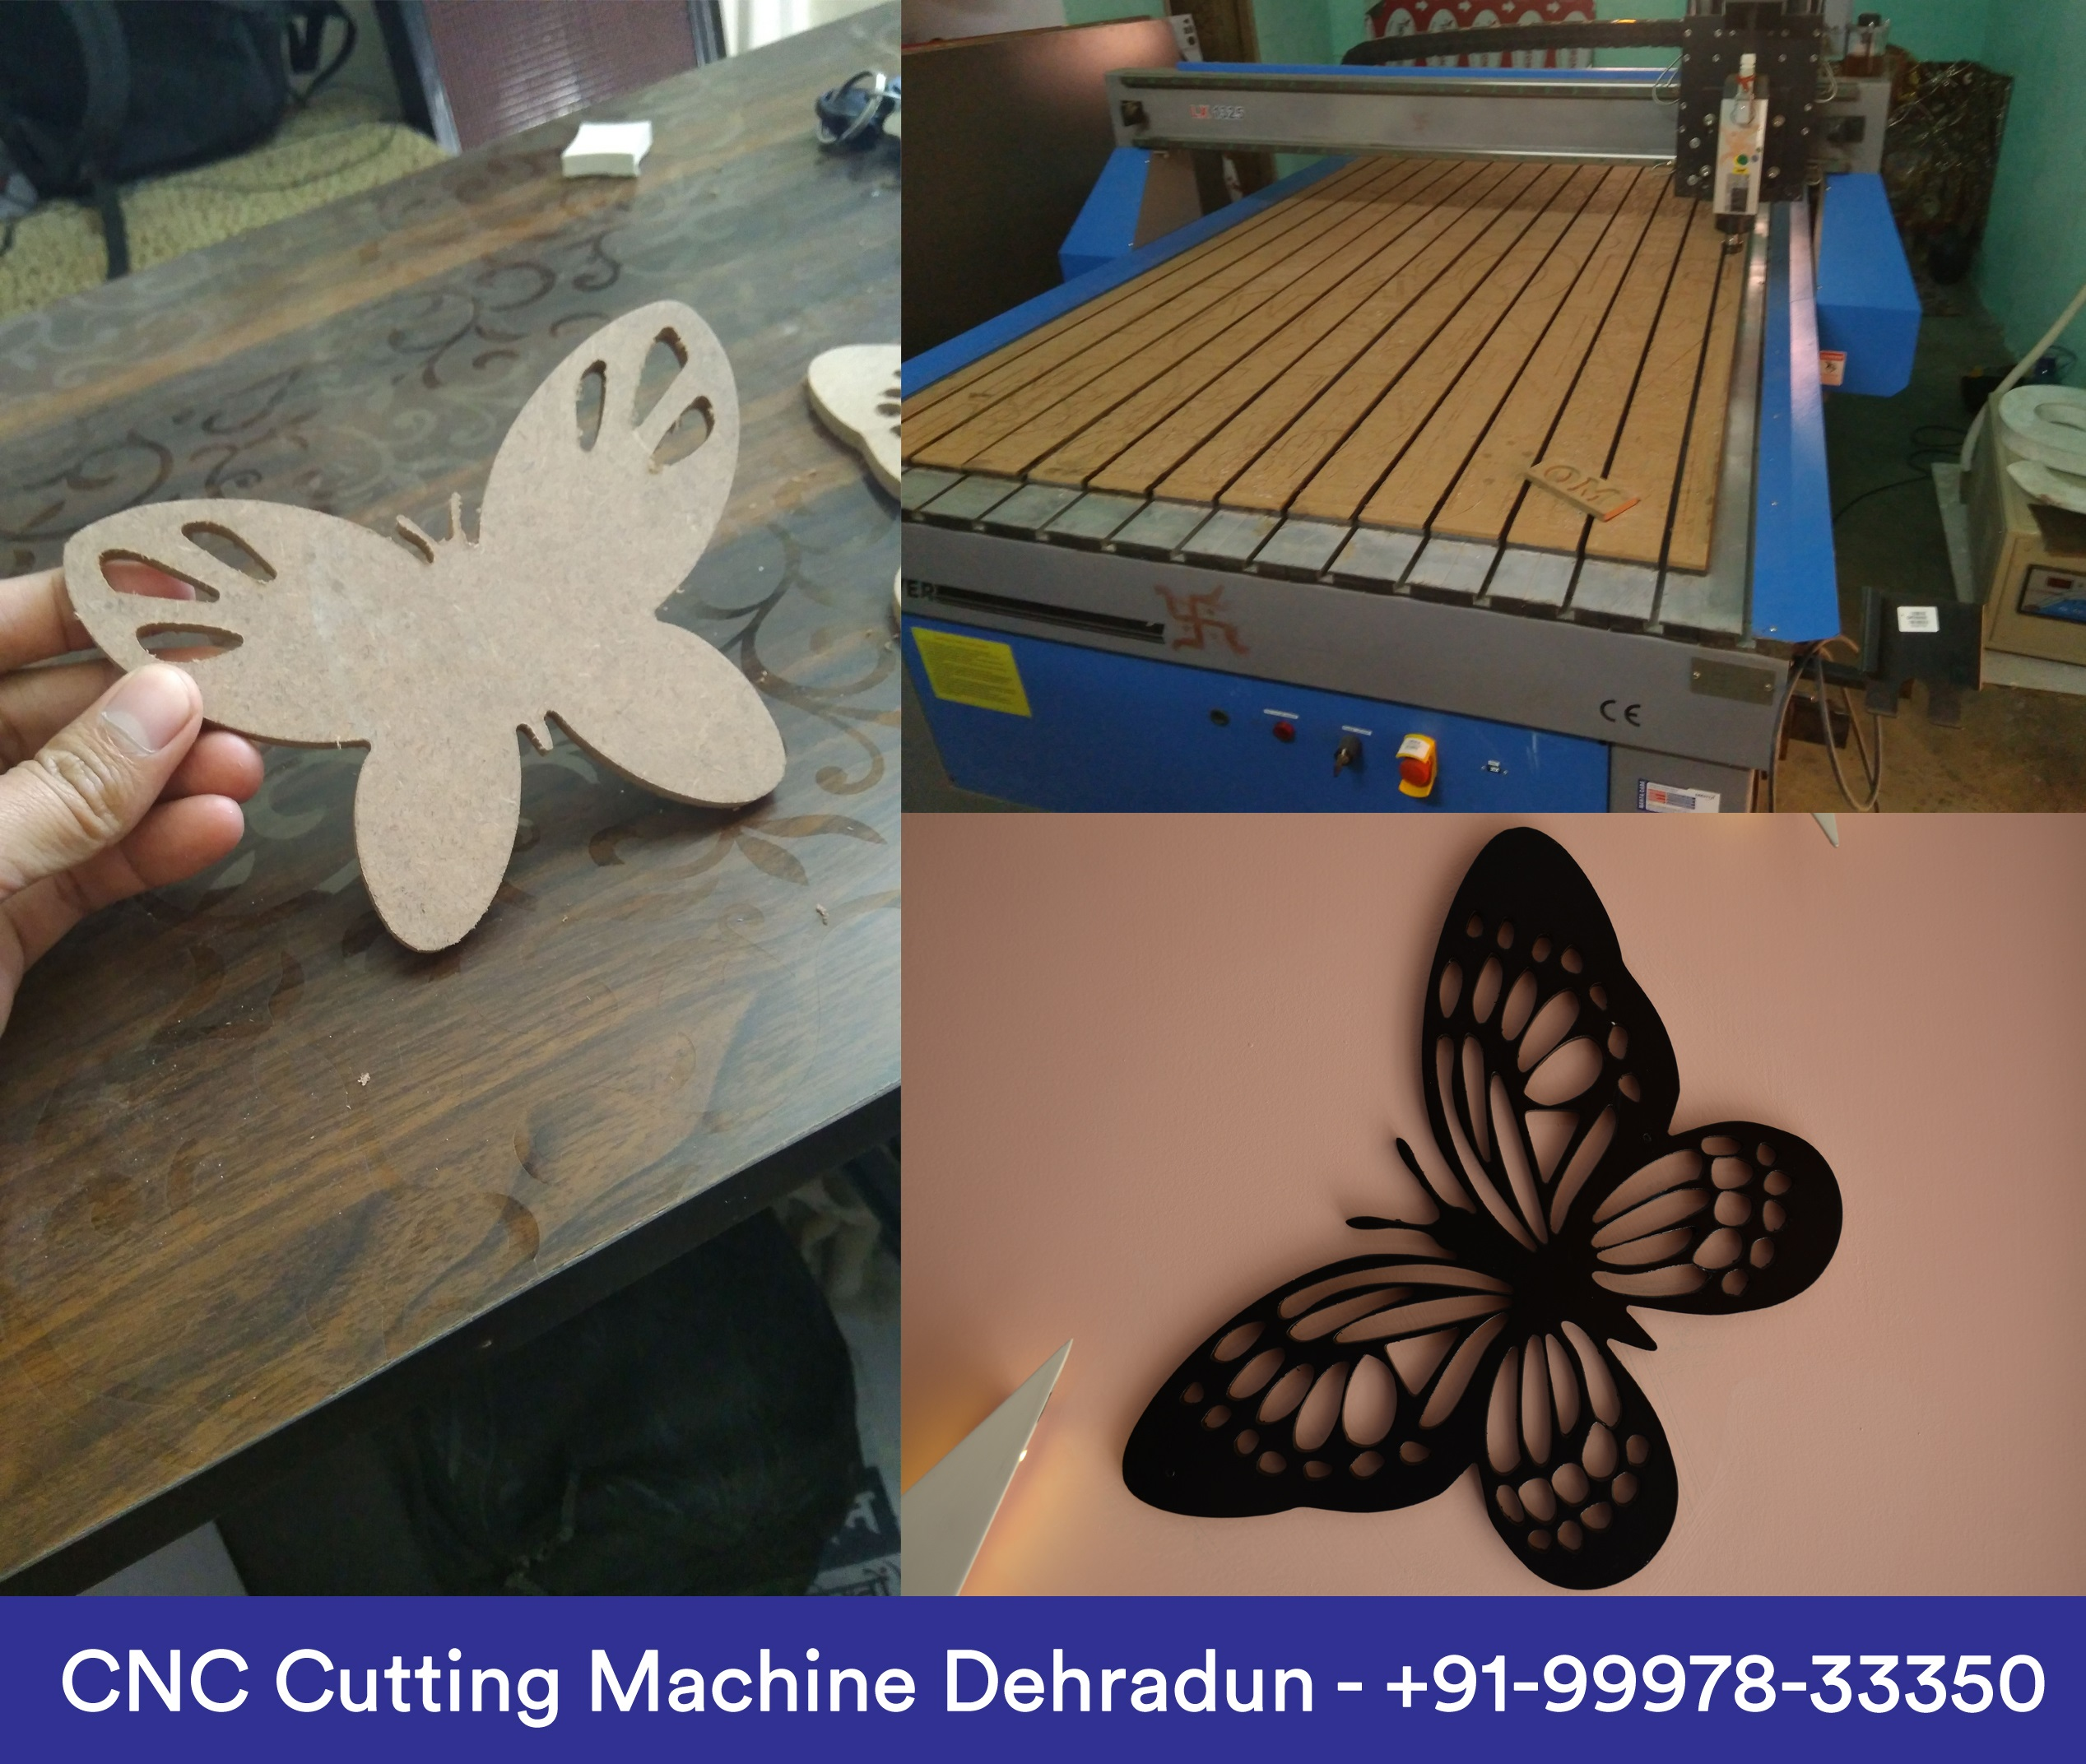 CNC Cutting Services Dehradun